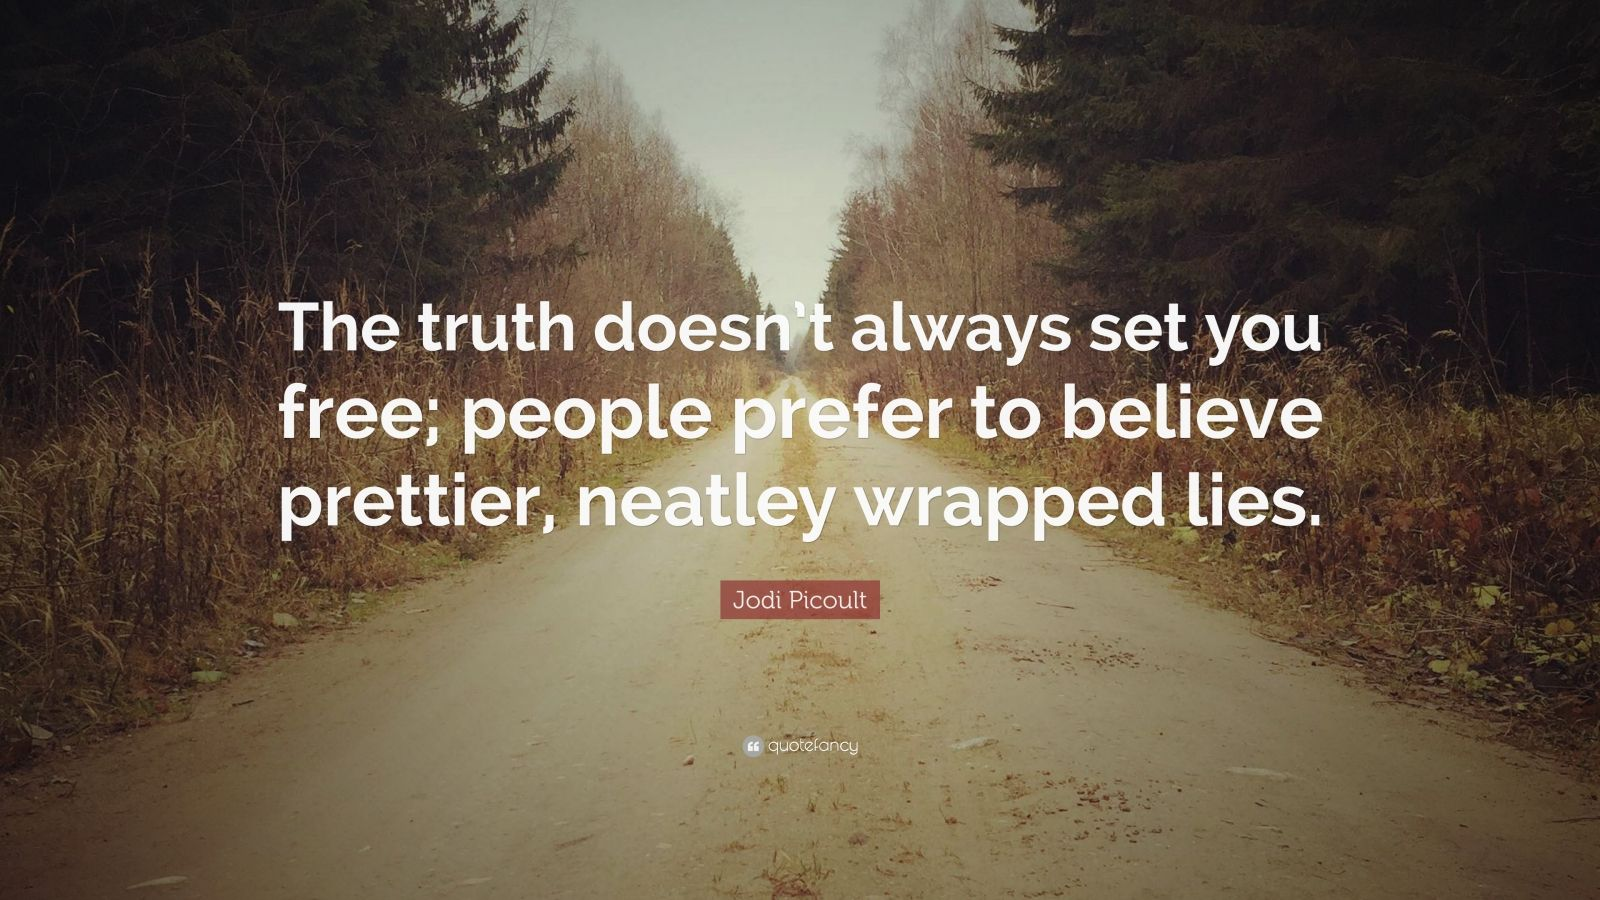 """Jodi Picoult Quote: """"The truth doesn't always set you free; people prefer to believe prettier, neatley wrapped lies."""""""